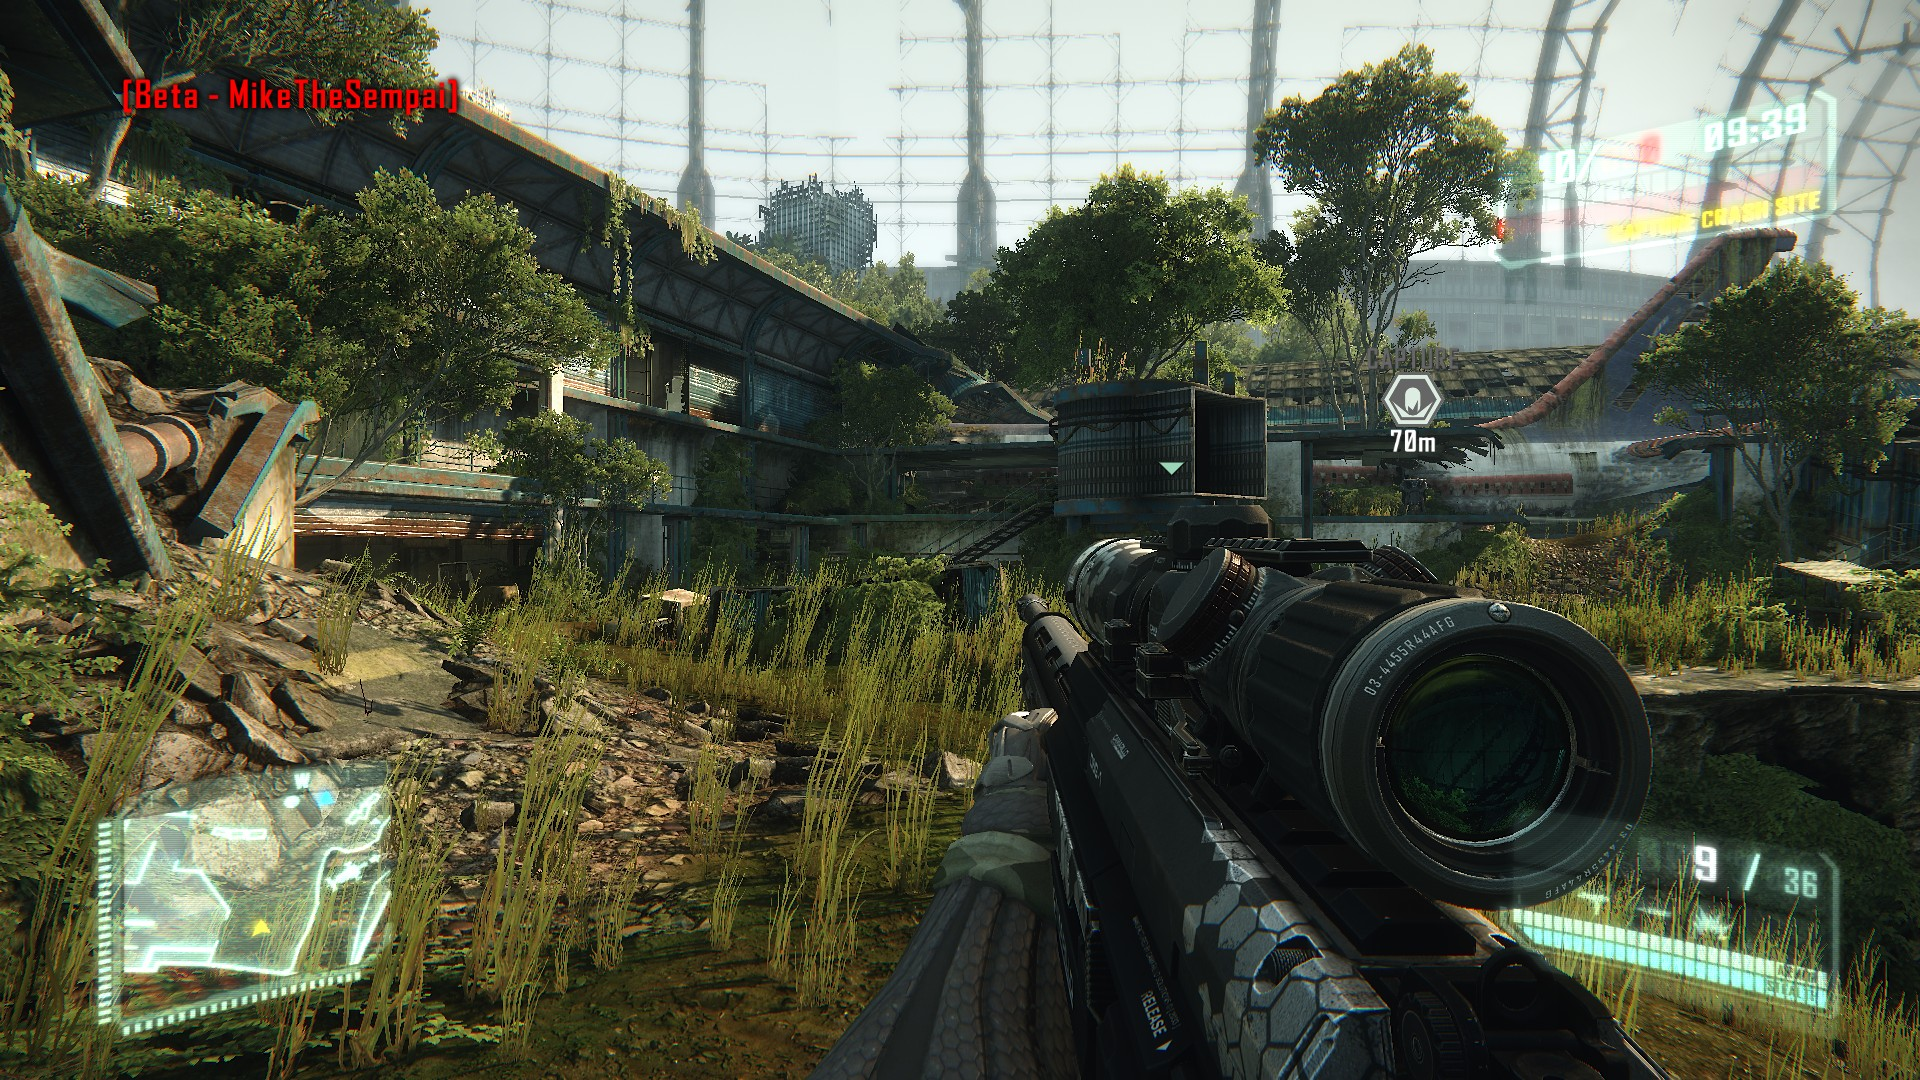 Why many got misconception crysis pc trilogy looks better than ps.